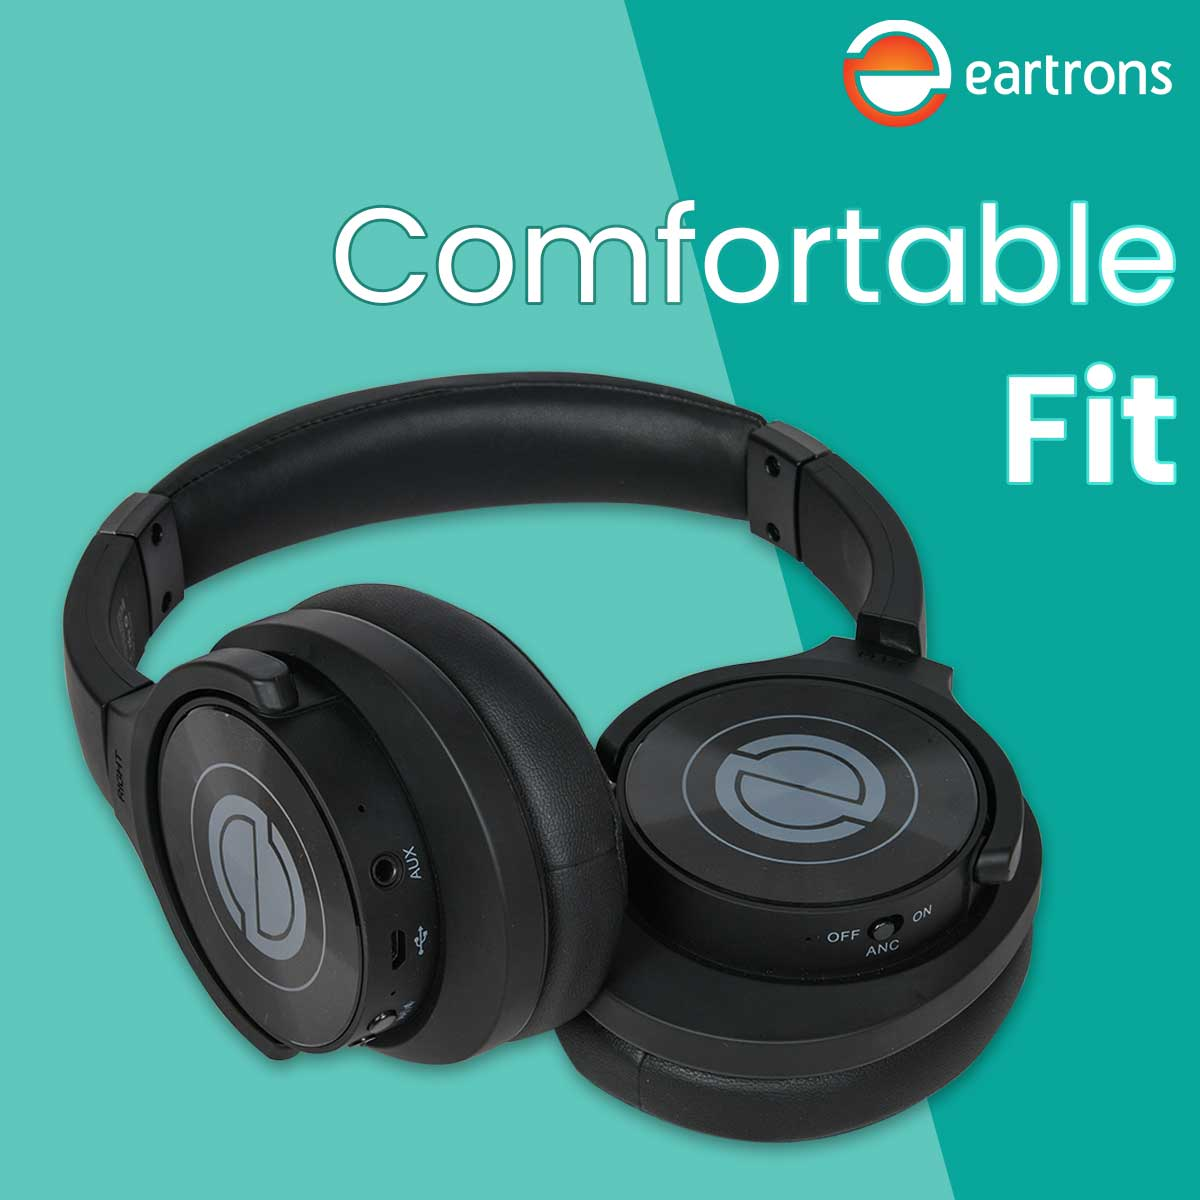 Eartrons lets you take your music wherever you go! Buy now, https://amzn.to/2IdQRRv   #Eartrons #audio #accessories #musiclover #musiclove #gifts #corporategifts #earphones #wireless #bluetoothheadphones pic.twitter.com/8fanulqCQy